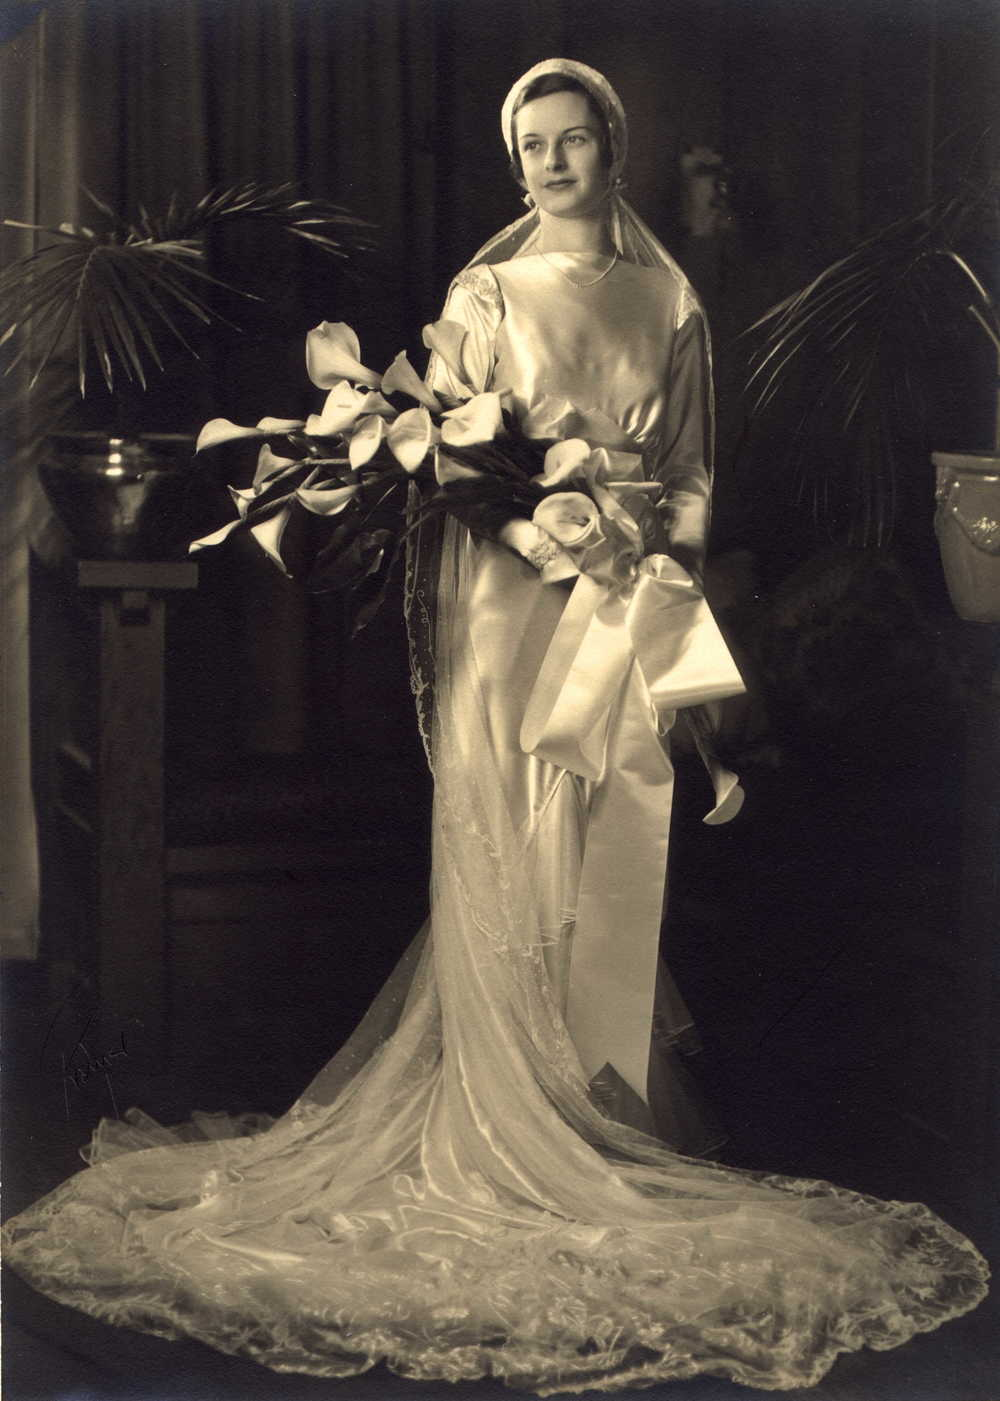 Lisa Porter in her full wedding dress